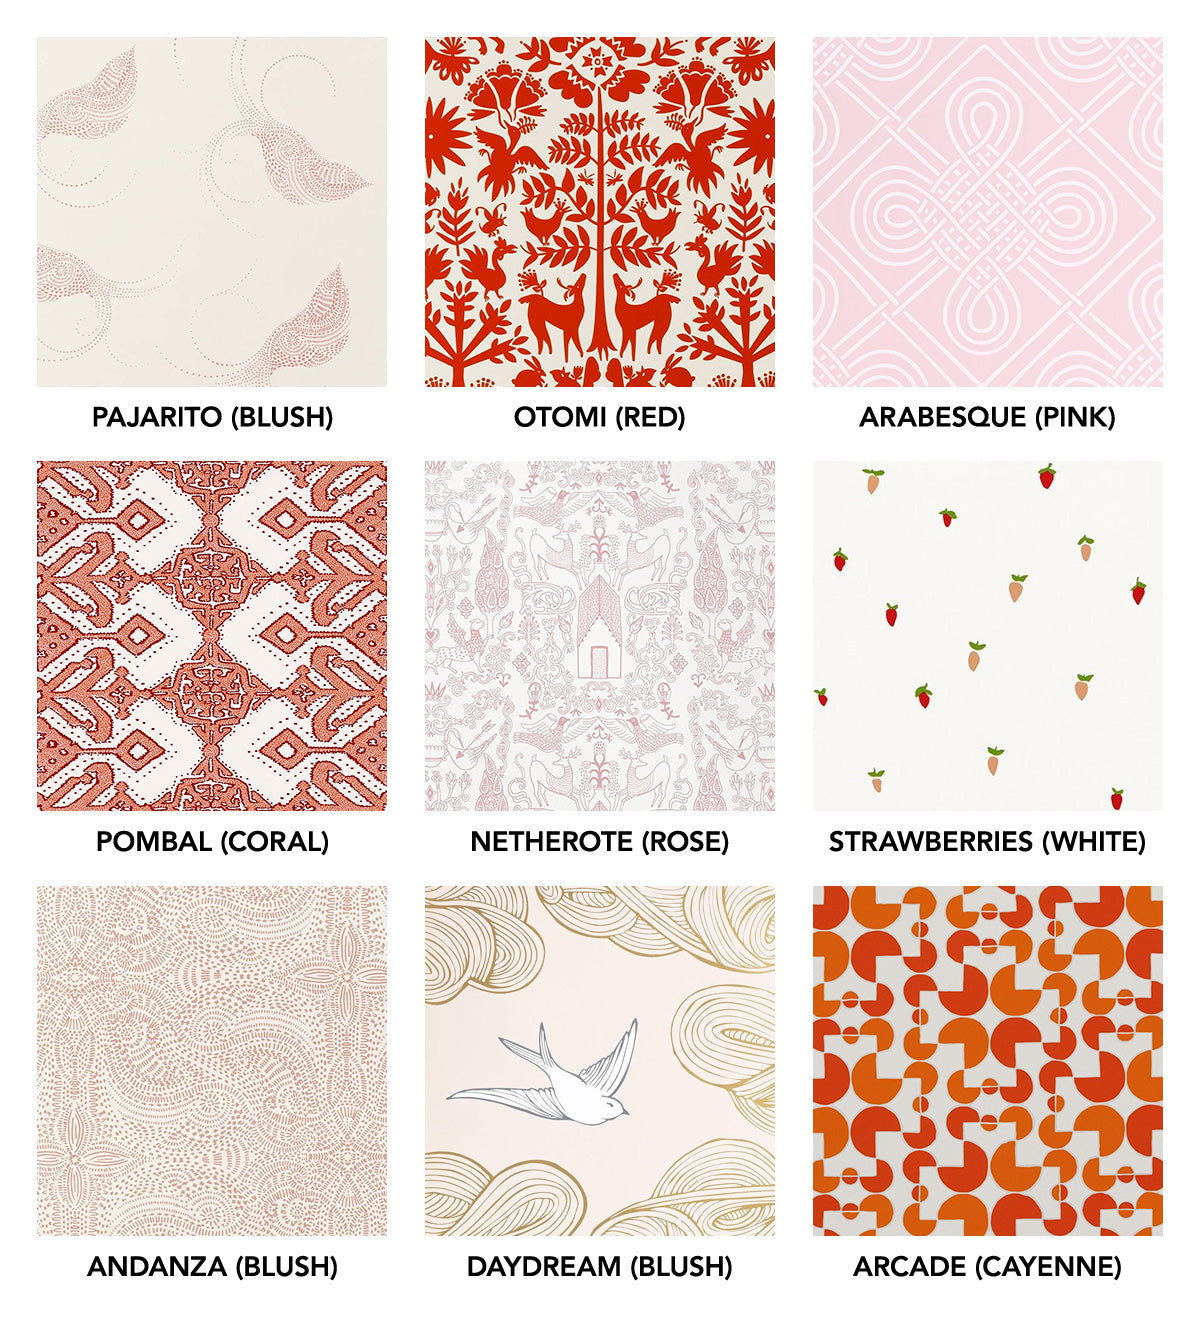 Red and pink wallpapers | Hygge & West